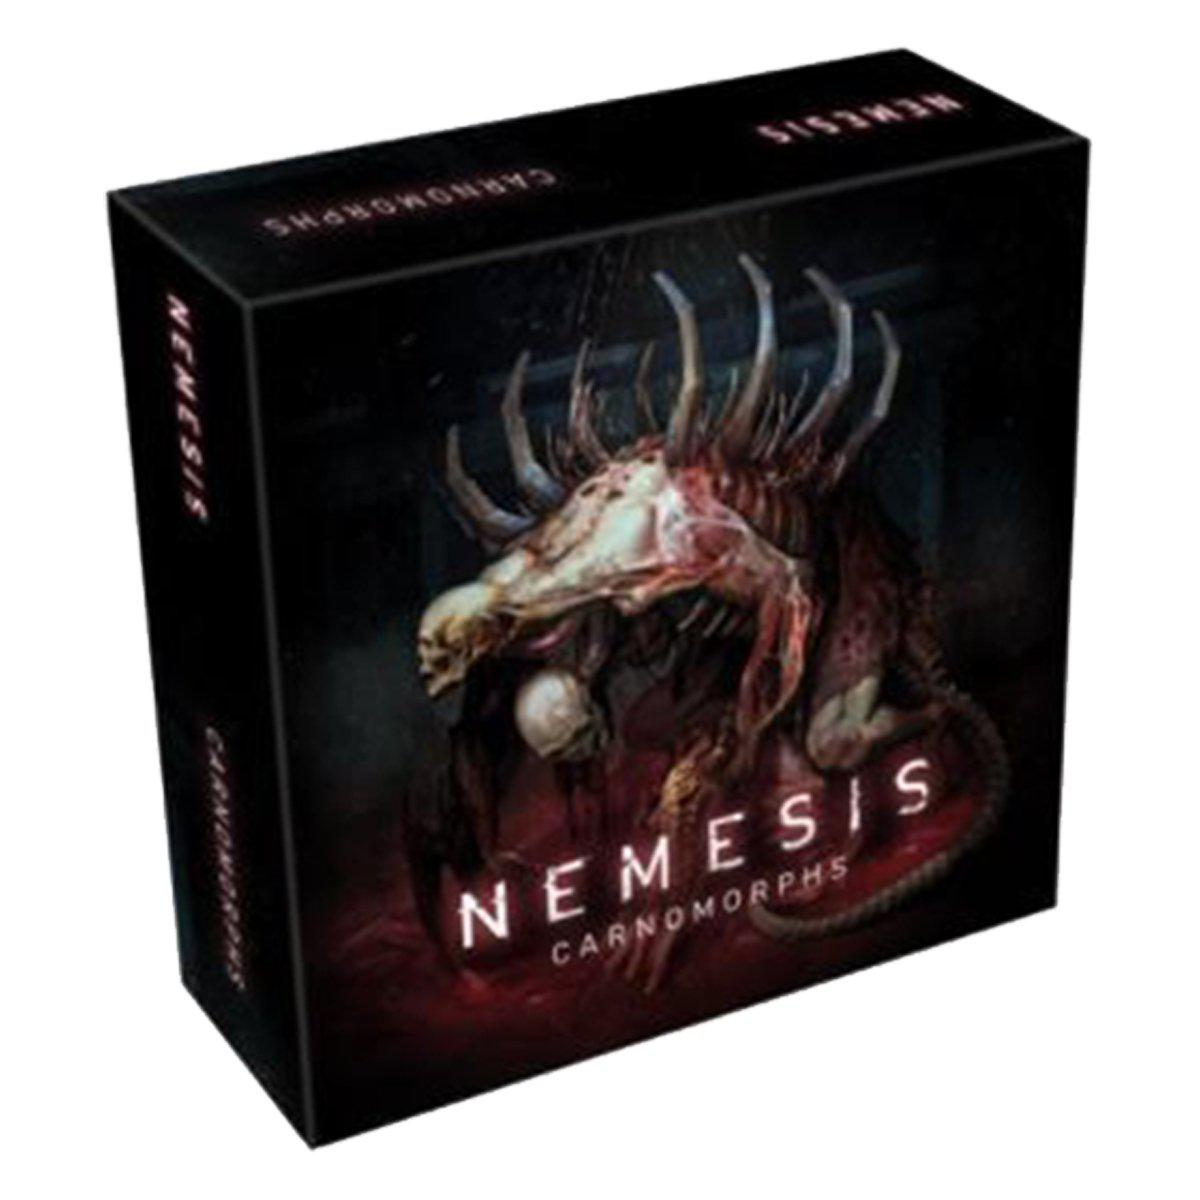 Nemesis Carnomorphs-Awaken Realms-Game Kings